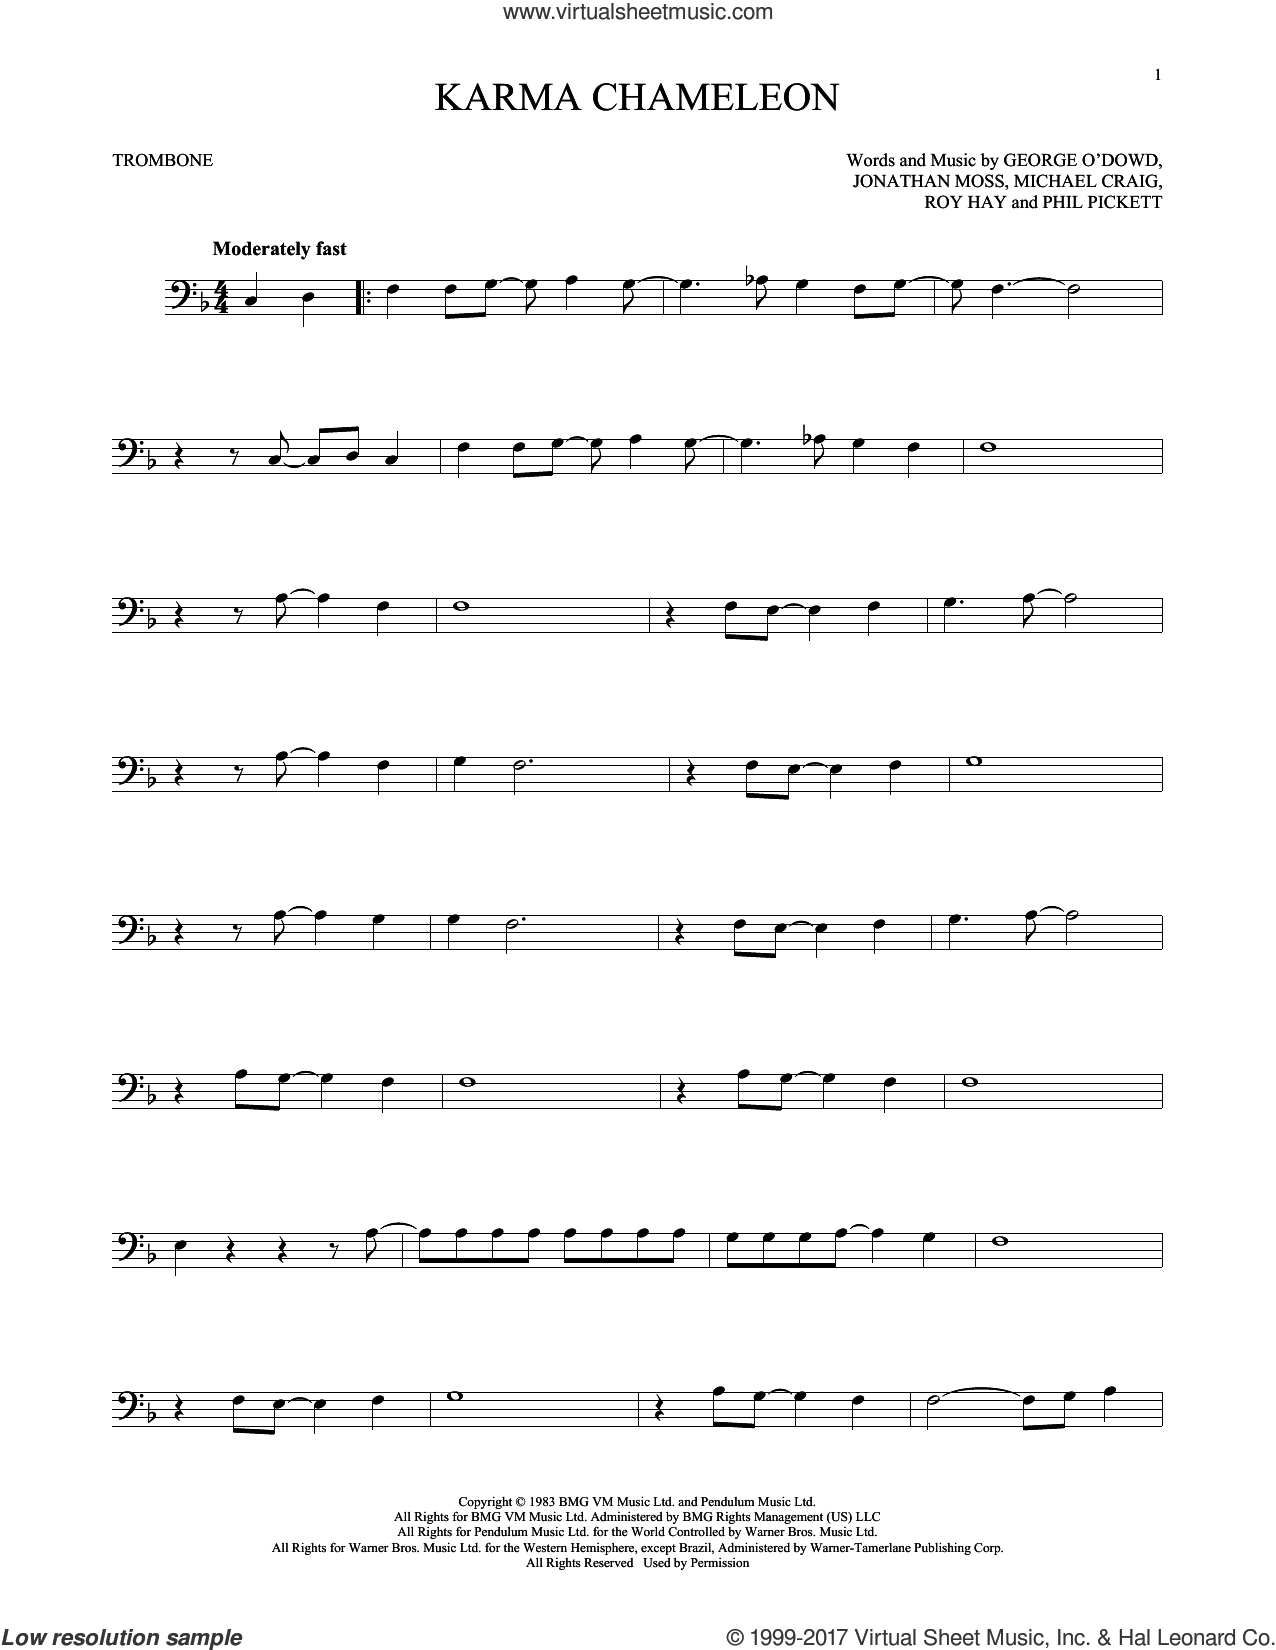 Karma Chameleon sheet music for trombone solo by Culture Club, Jonathan Moss, Michael Craig, Phil Pickett and Roy Hay, intermediate skill level